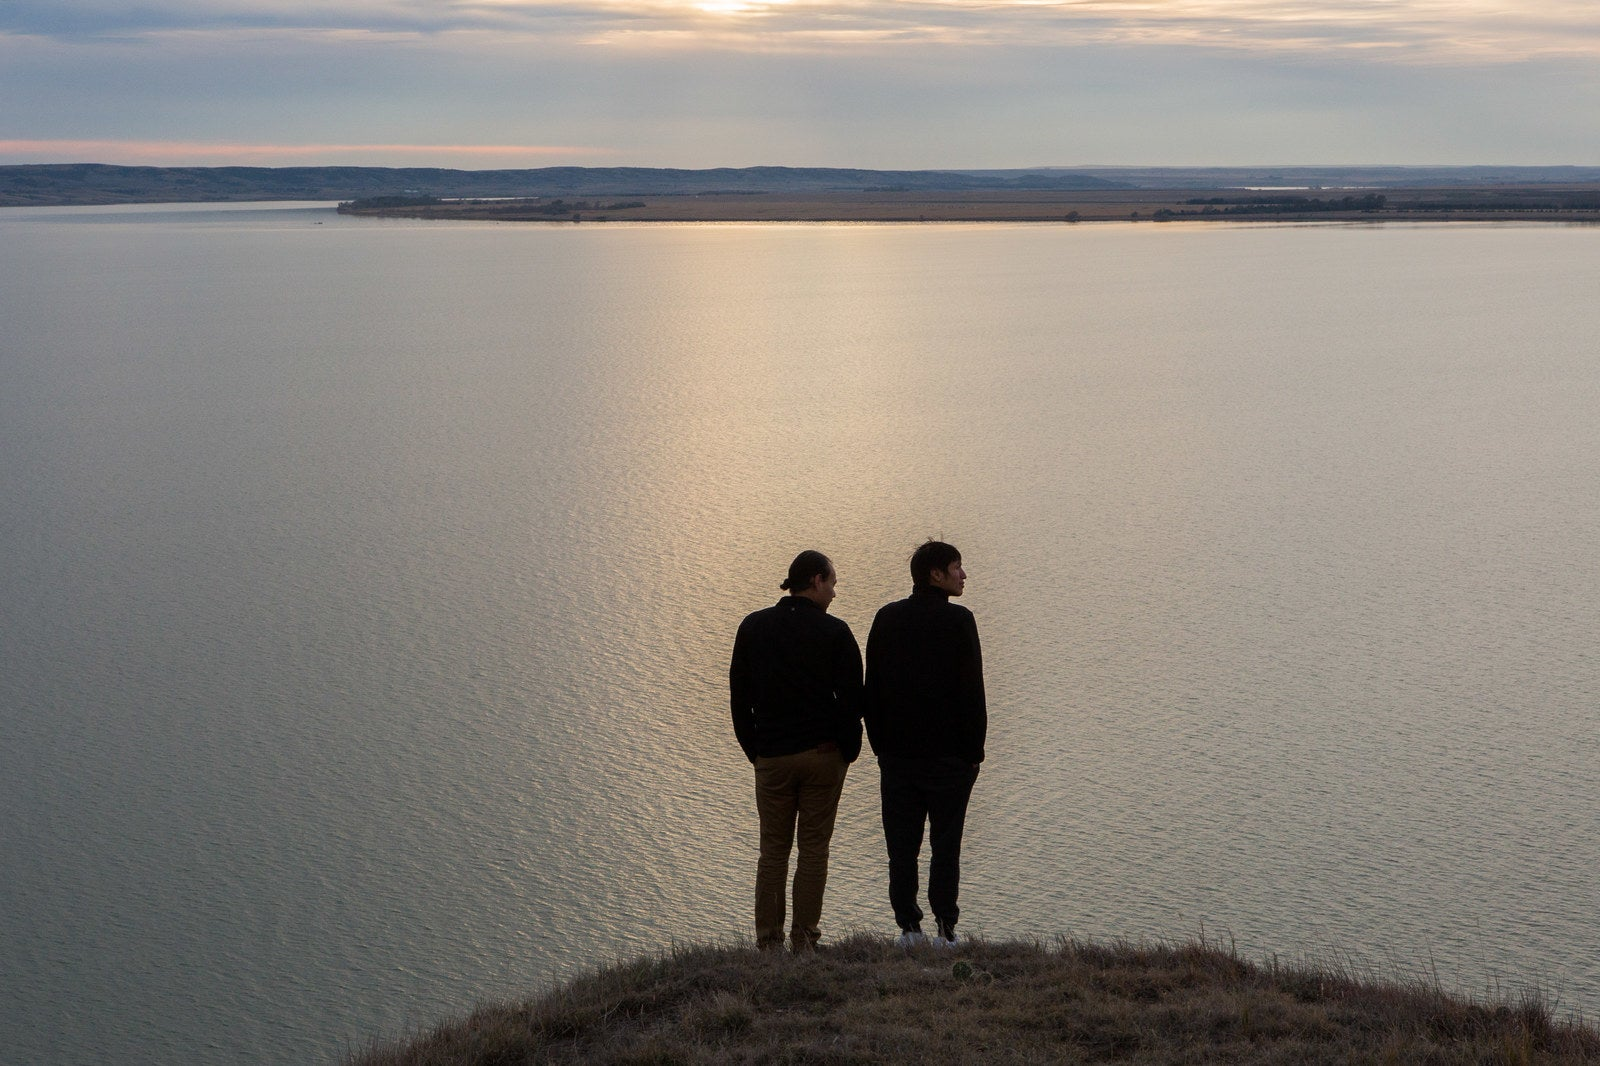 Joseph White Eyes and Danny Grassrope stand on a bluff overlooking the Missouri River on the Lower Brule Reservation in South Dakota on Nov. 8, 2017. Grassrope grew up in Lower Brule and returned there with White Eyes after the #NoDAPL camps in Standing Rock were evicted in early 2017. Grassrope and White Eyes are now working as environmental activists in Lower Brule and beyond.